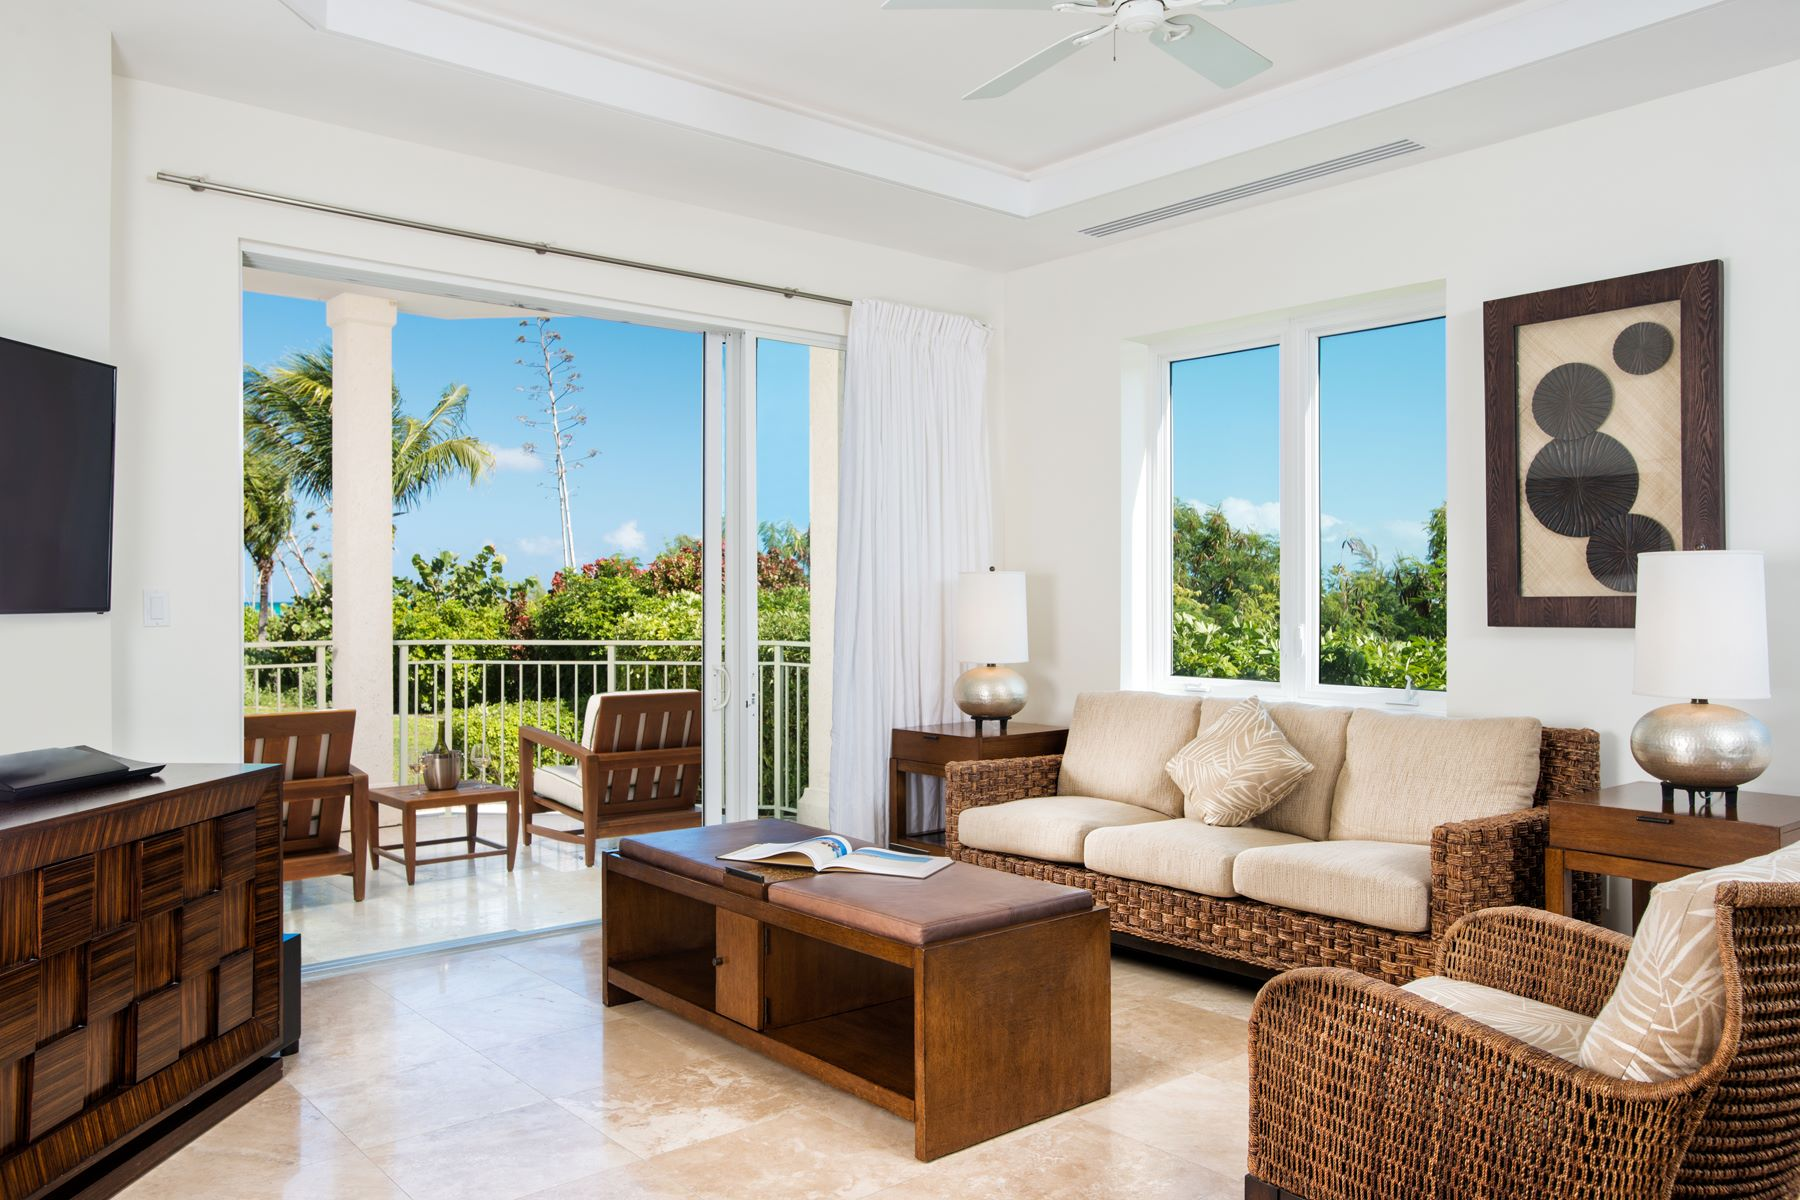 Condominium for Sale at West Bay Club - Suite 110 West Bay Club, Grace Bay, Providenciales Turks And Caicos Islands